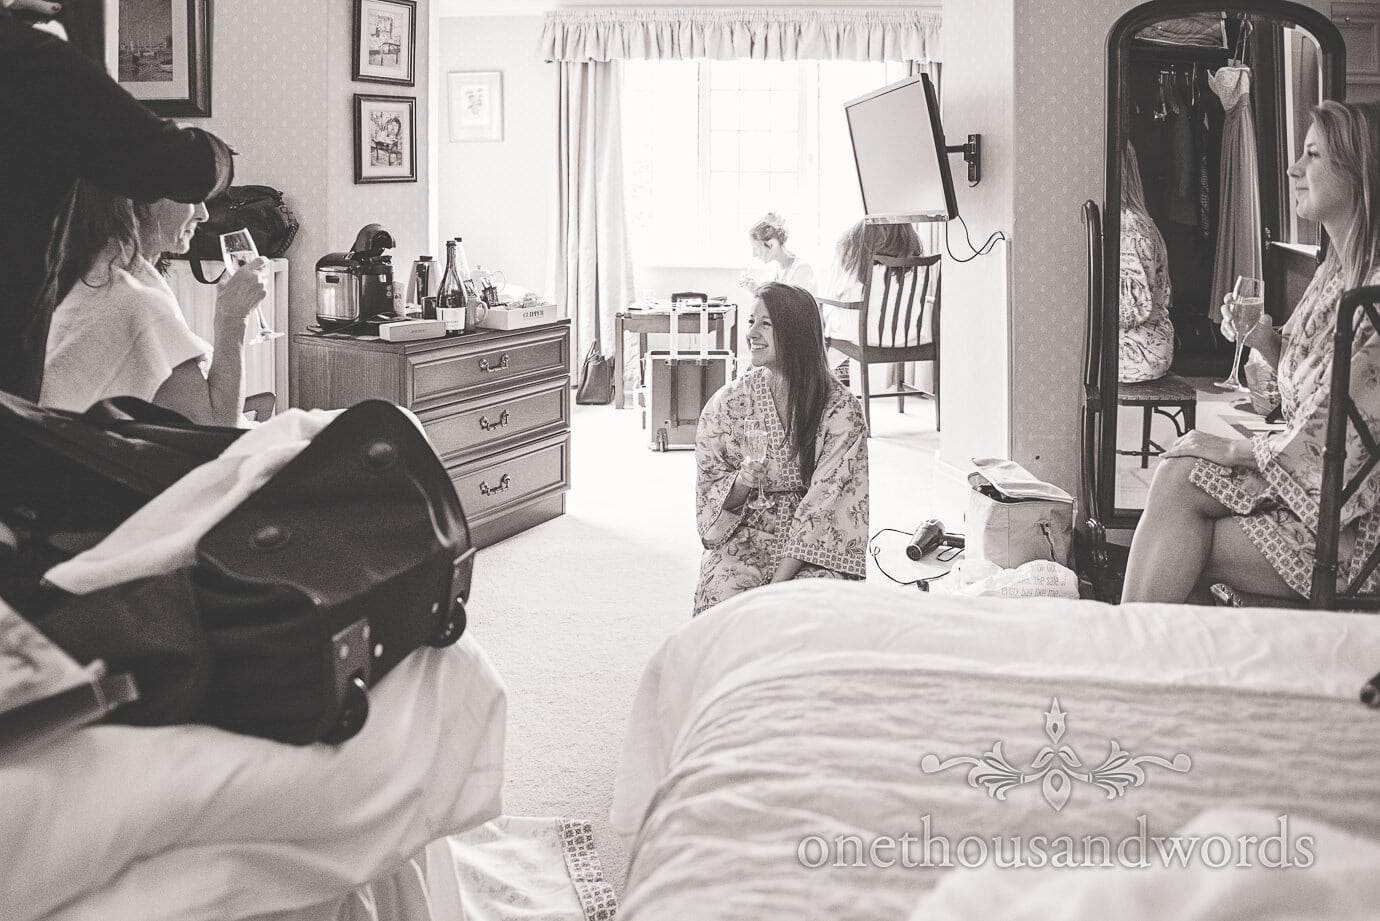 Black and white documentary wedding photograph of bridal preparation on wedding morning